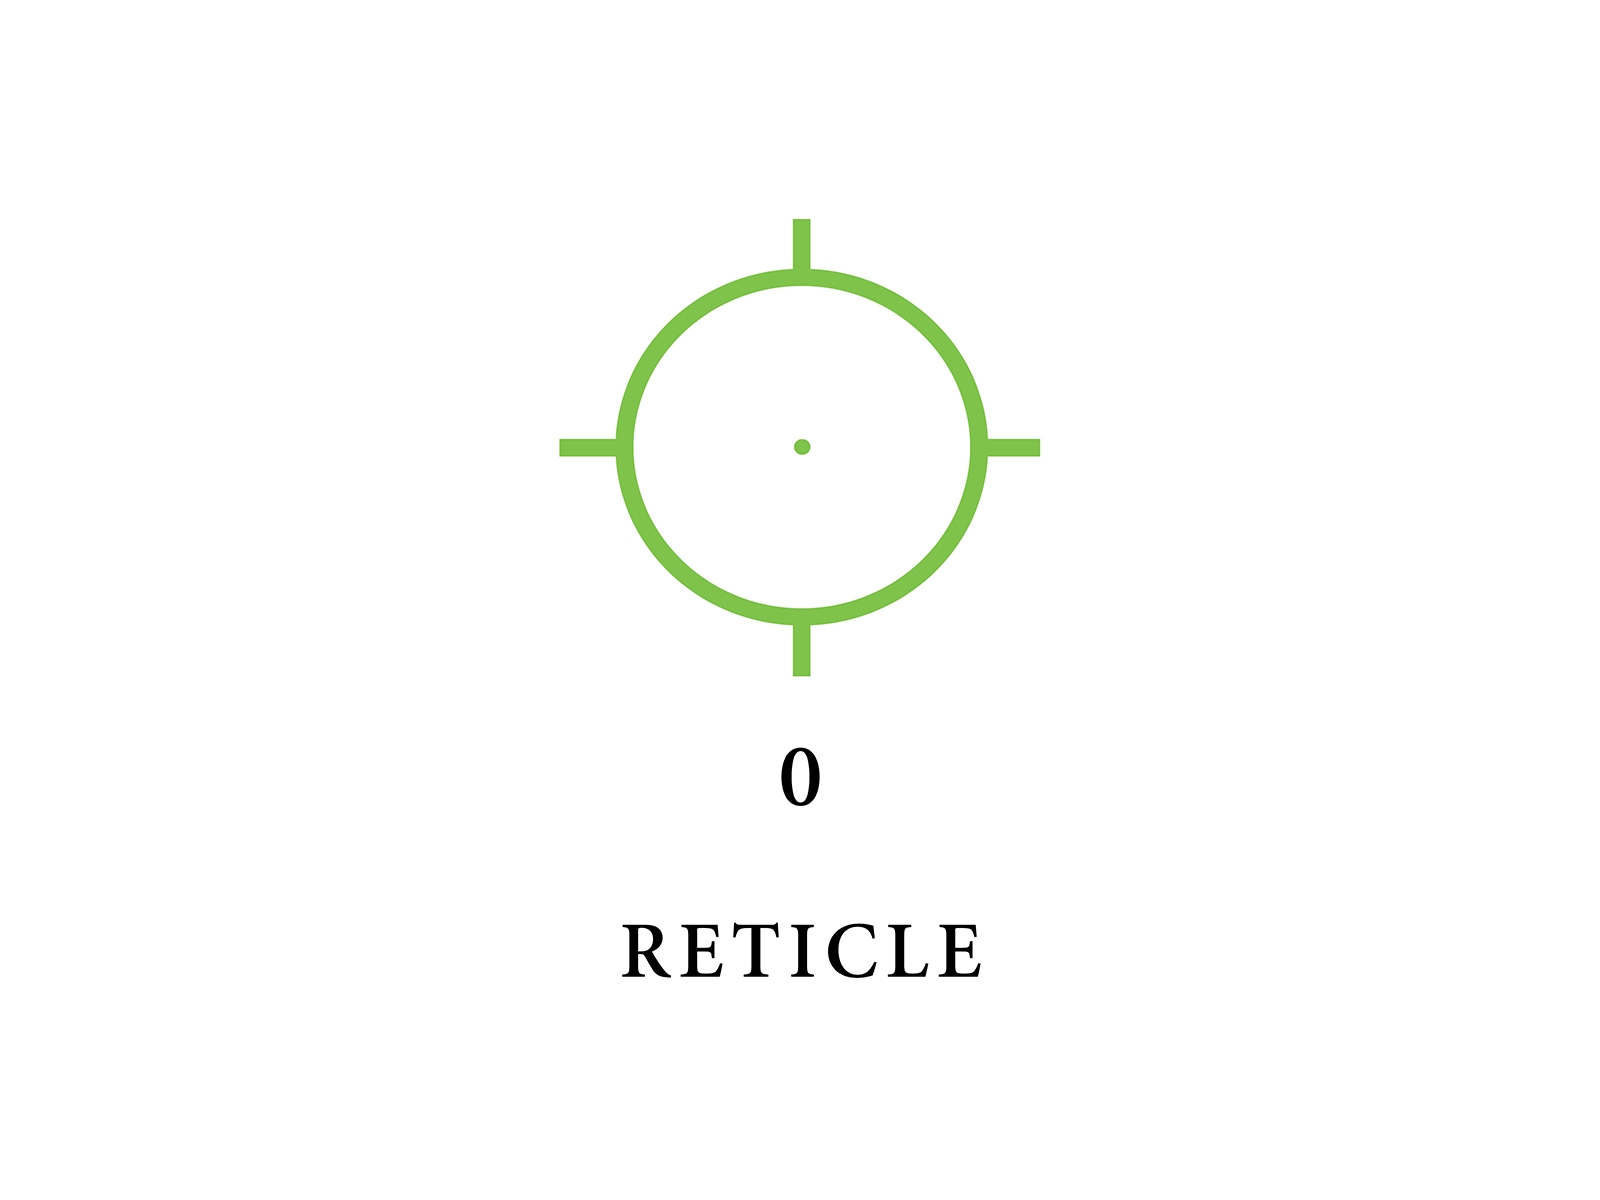 hws_green_0-reticle_1